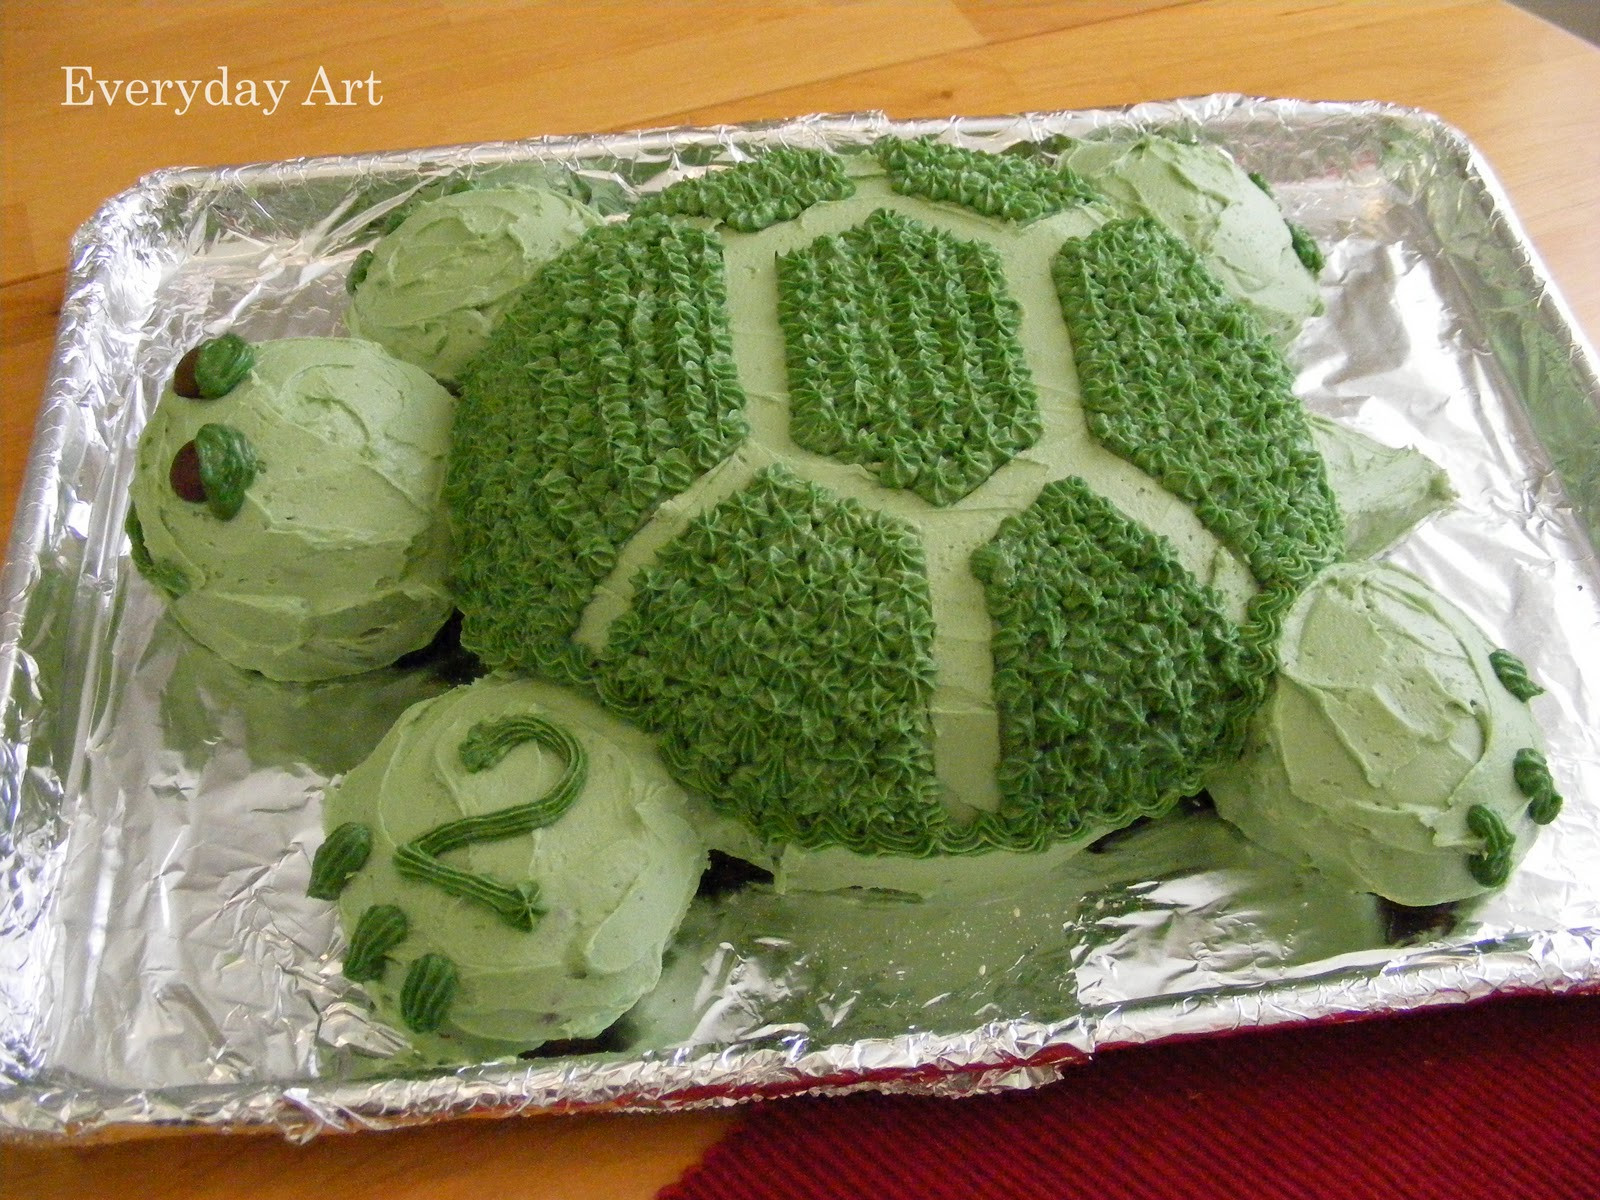 Best ideas about Turtle Birthday Cake . Save or Pin Everyday Art Turtle Birthday Cake Now.